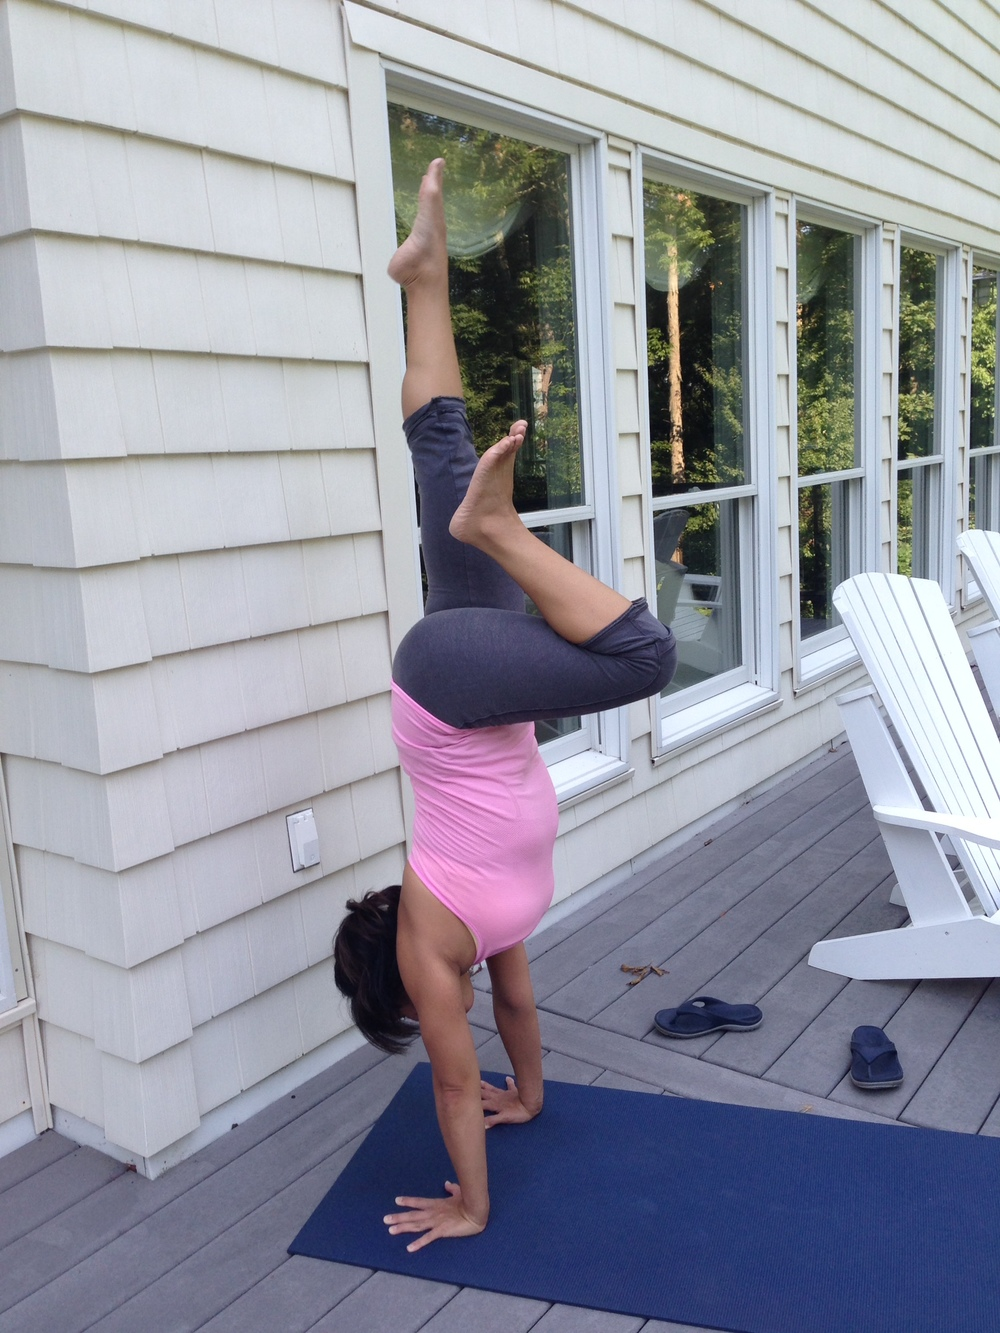 handstand by the porch.jpg